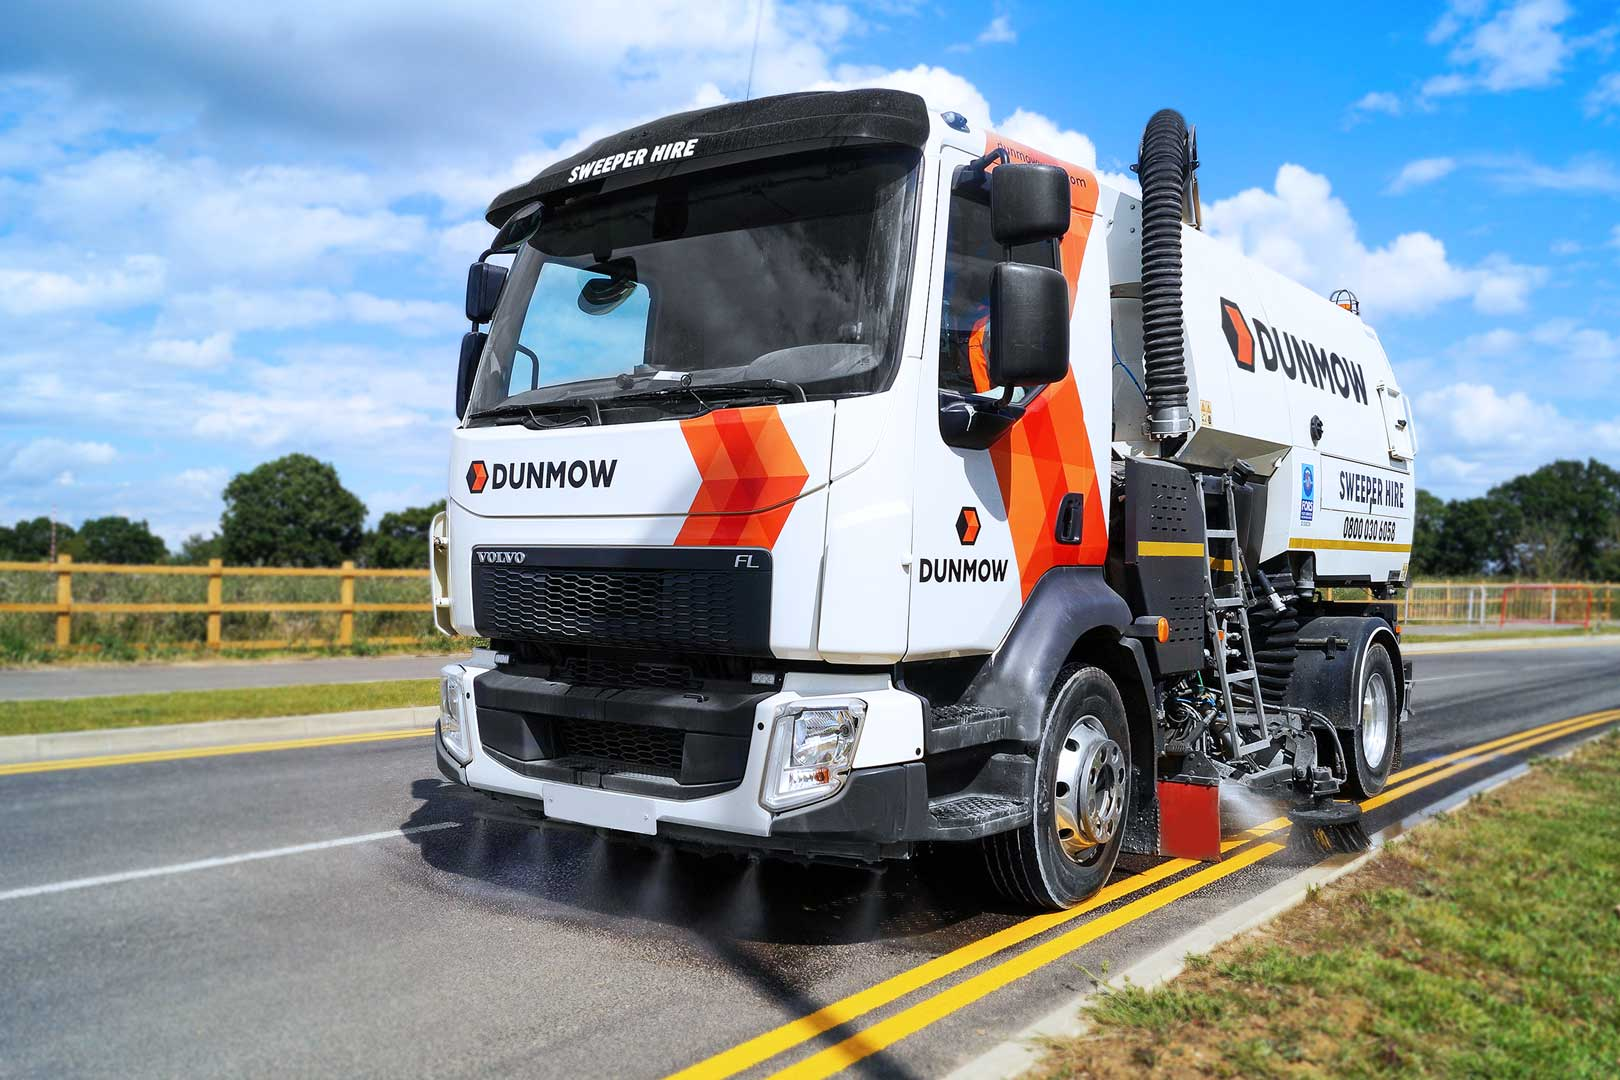 08-Dunmow-WC-Road-Sweeper-01